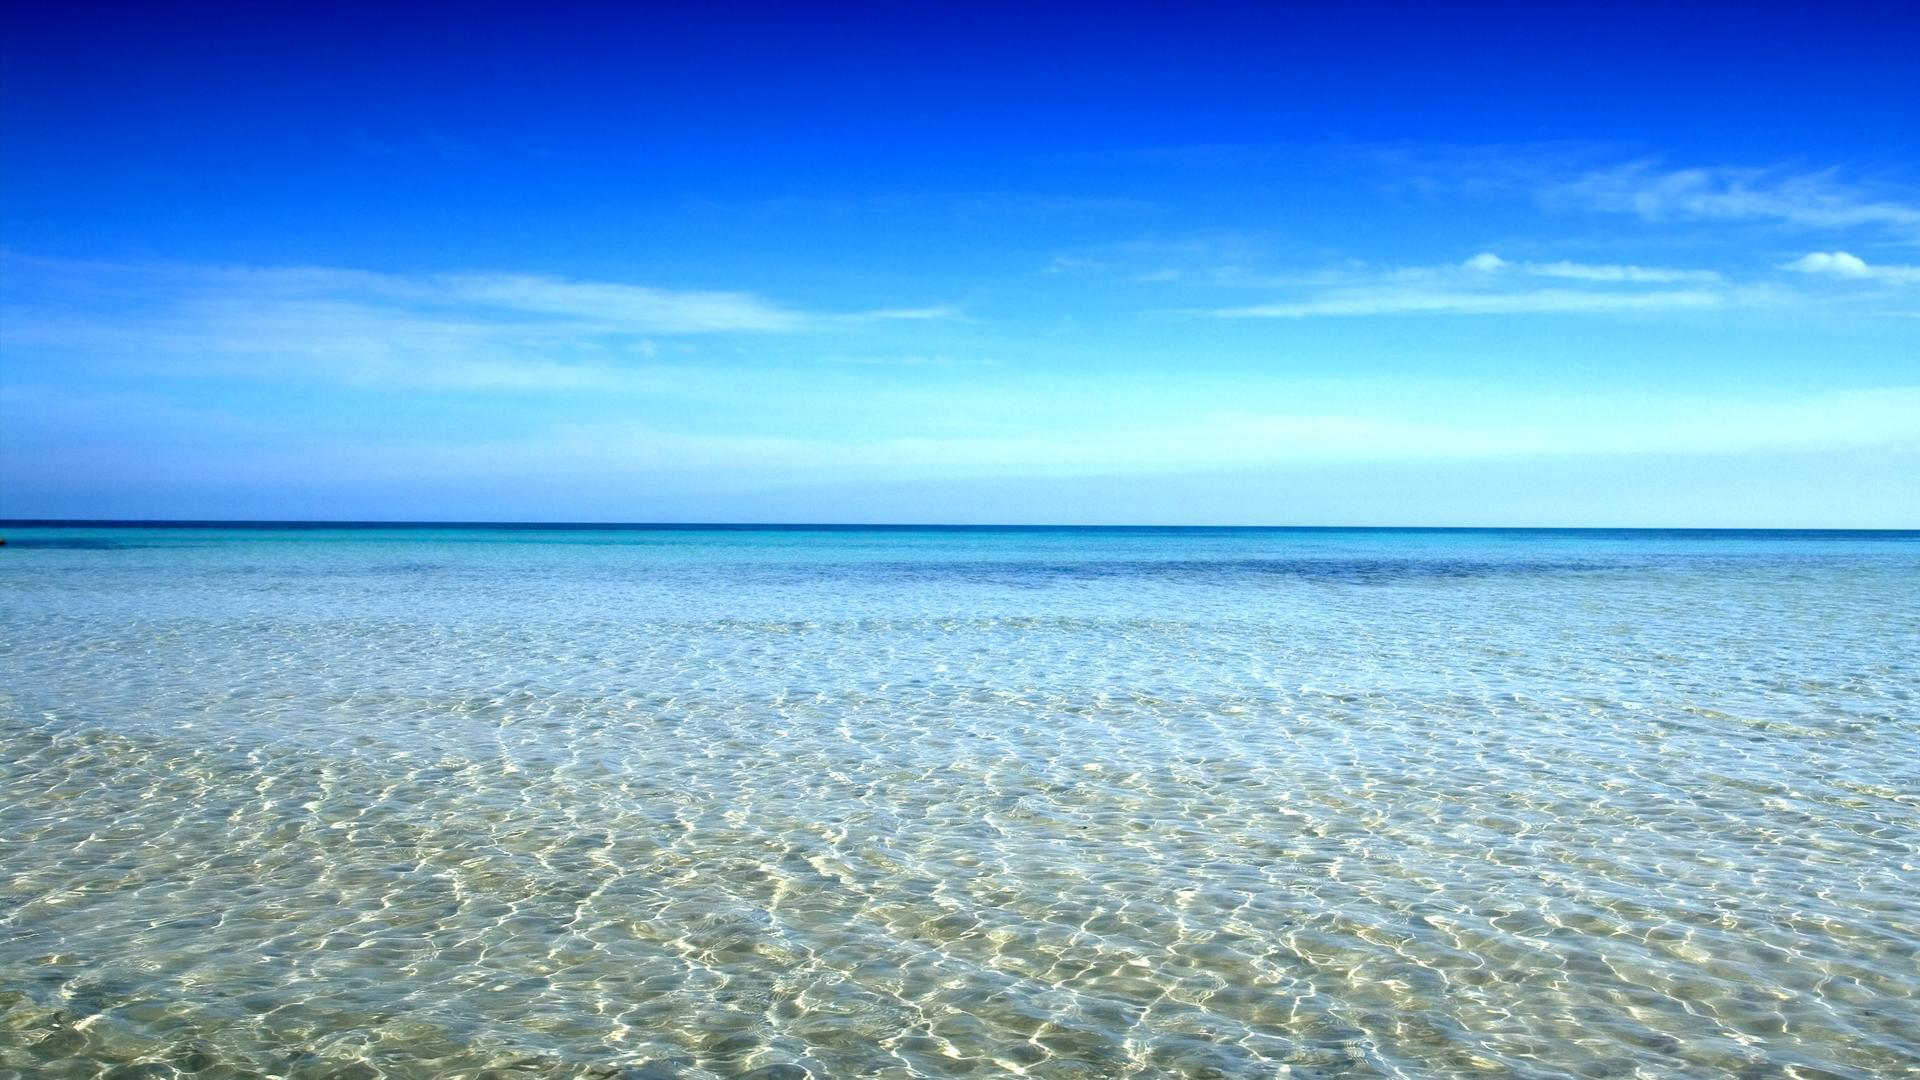 desktop backgrounds hd ocean - photo #7